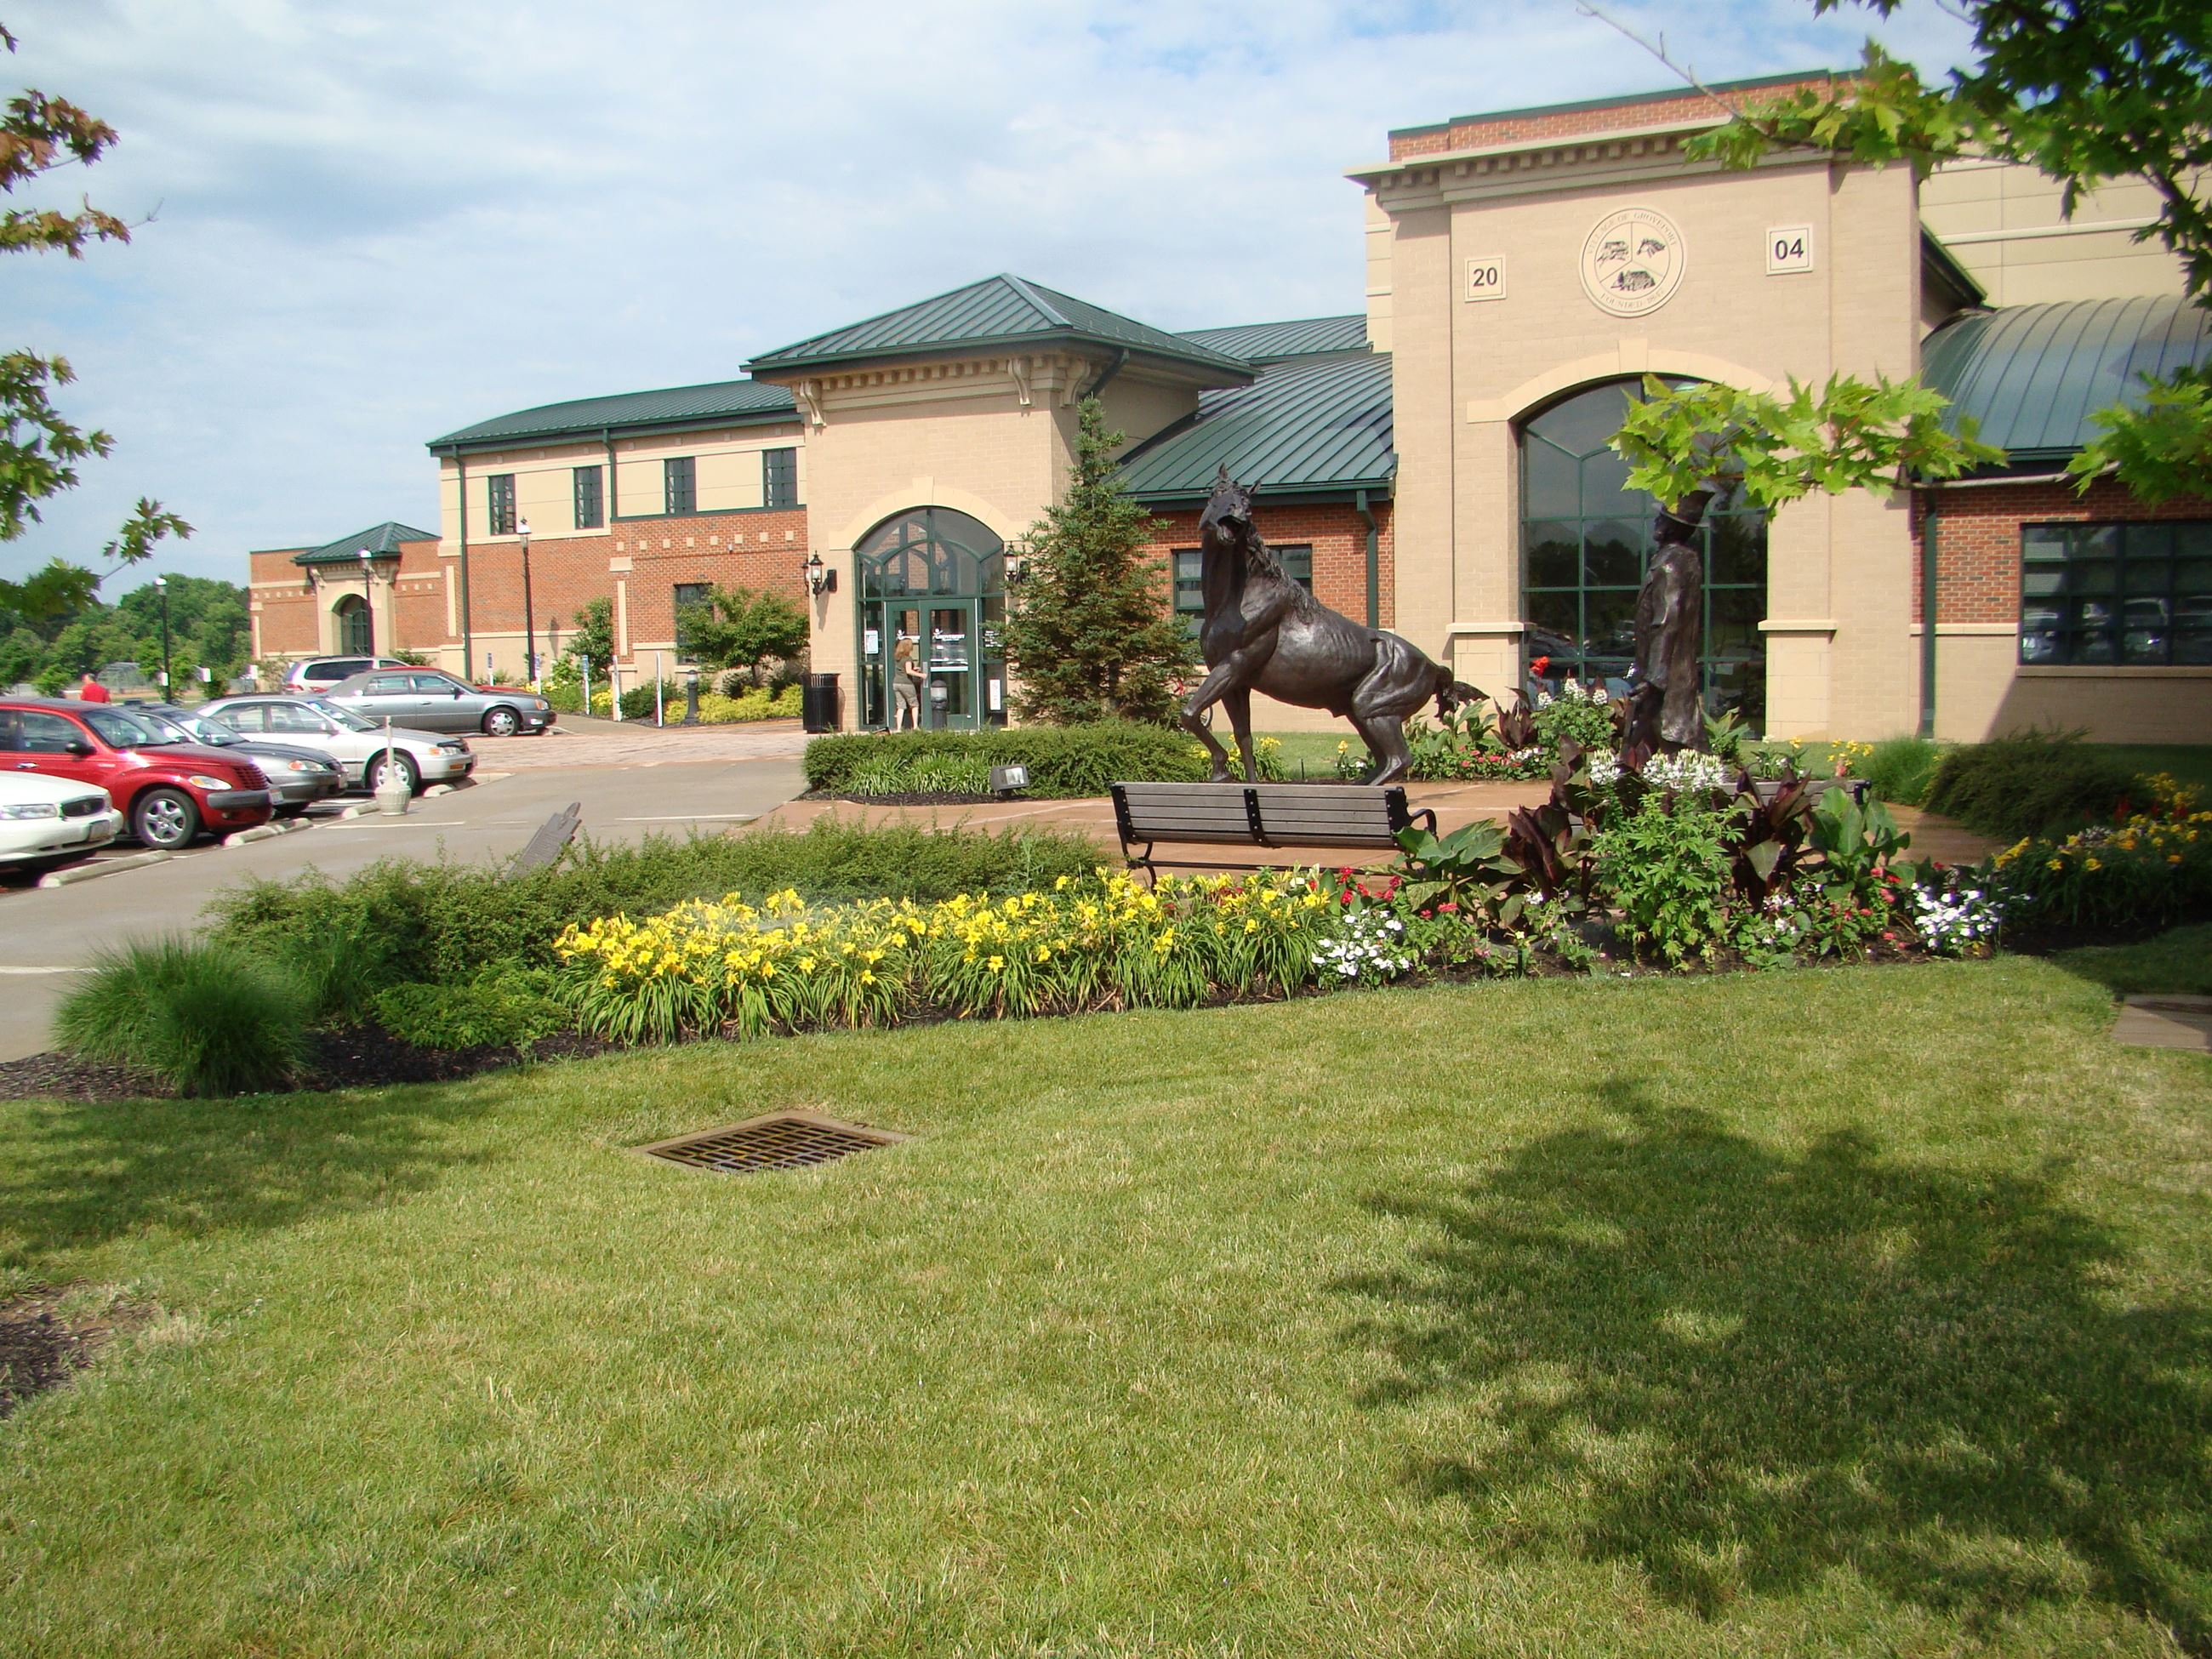 A view of the lawn and front of the Groveport Recreation Center.